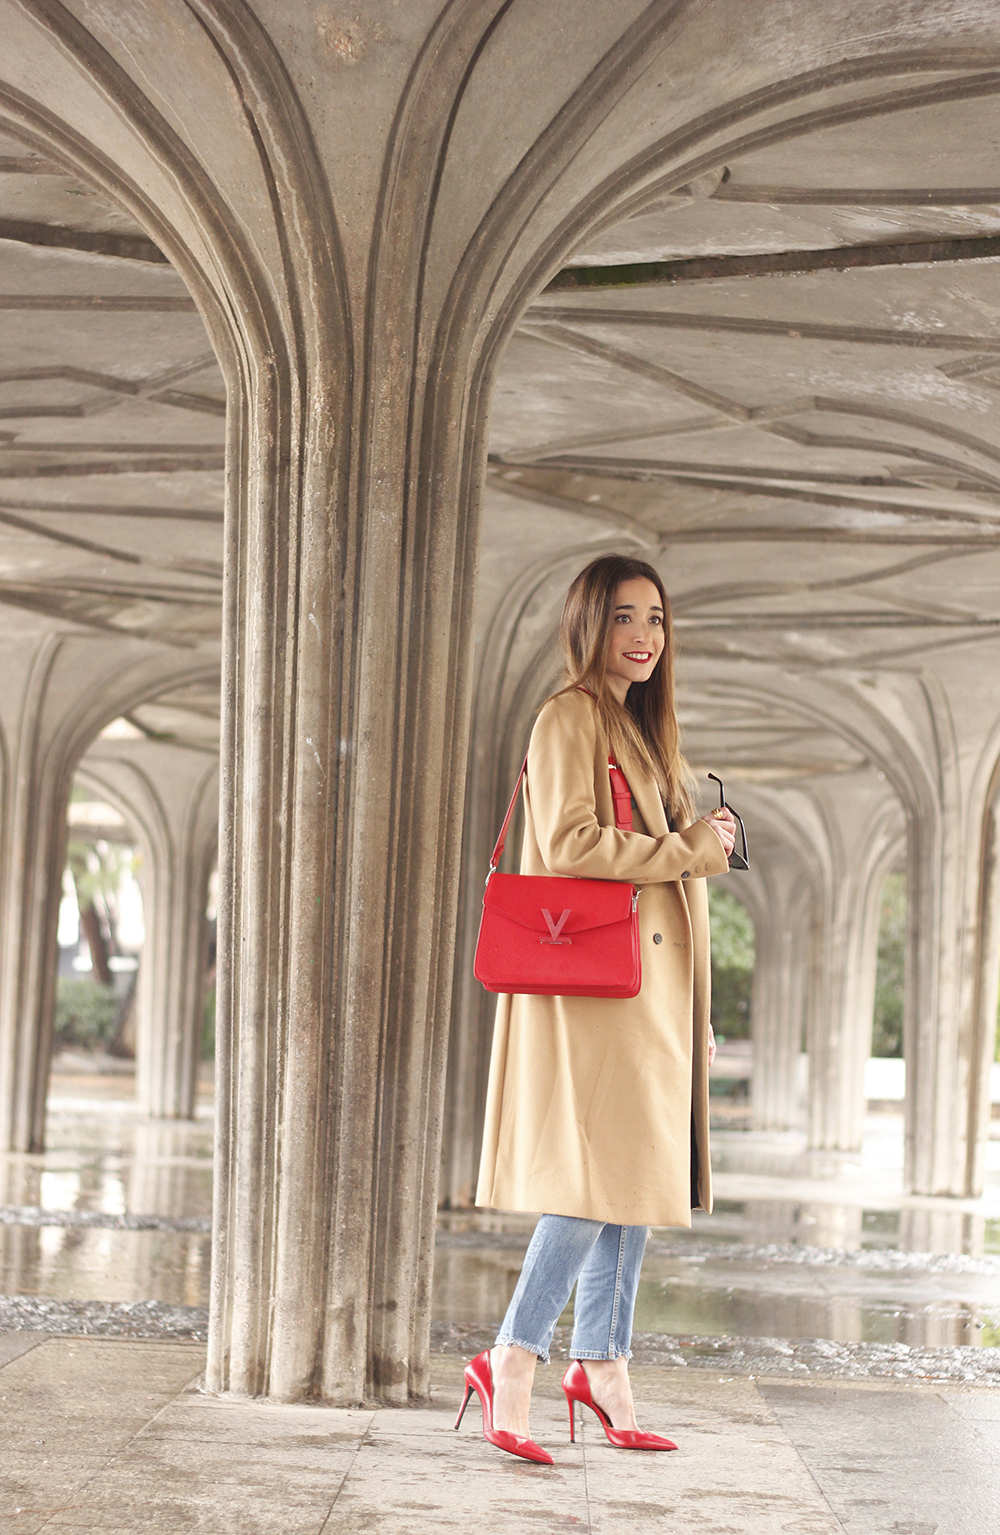 camel coat red valentinobags black outfit winter style fashion02